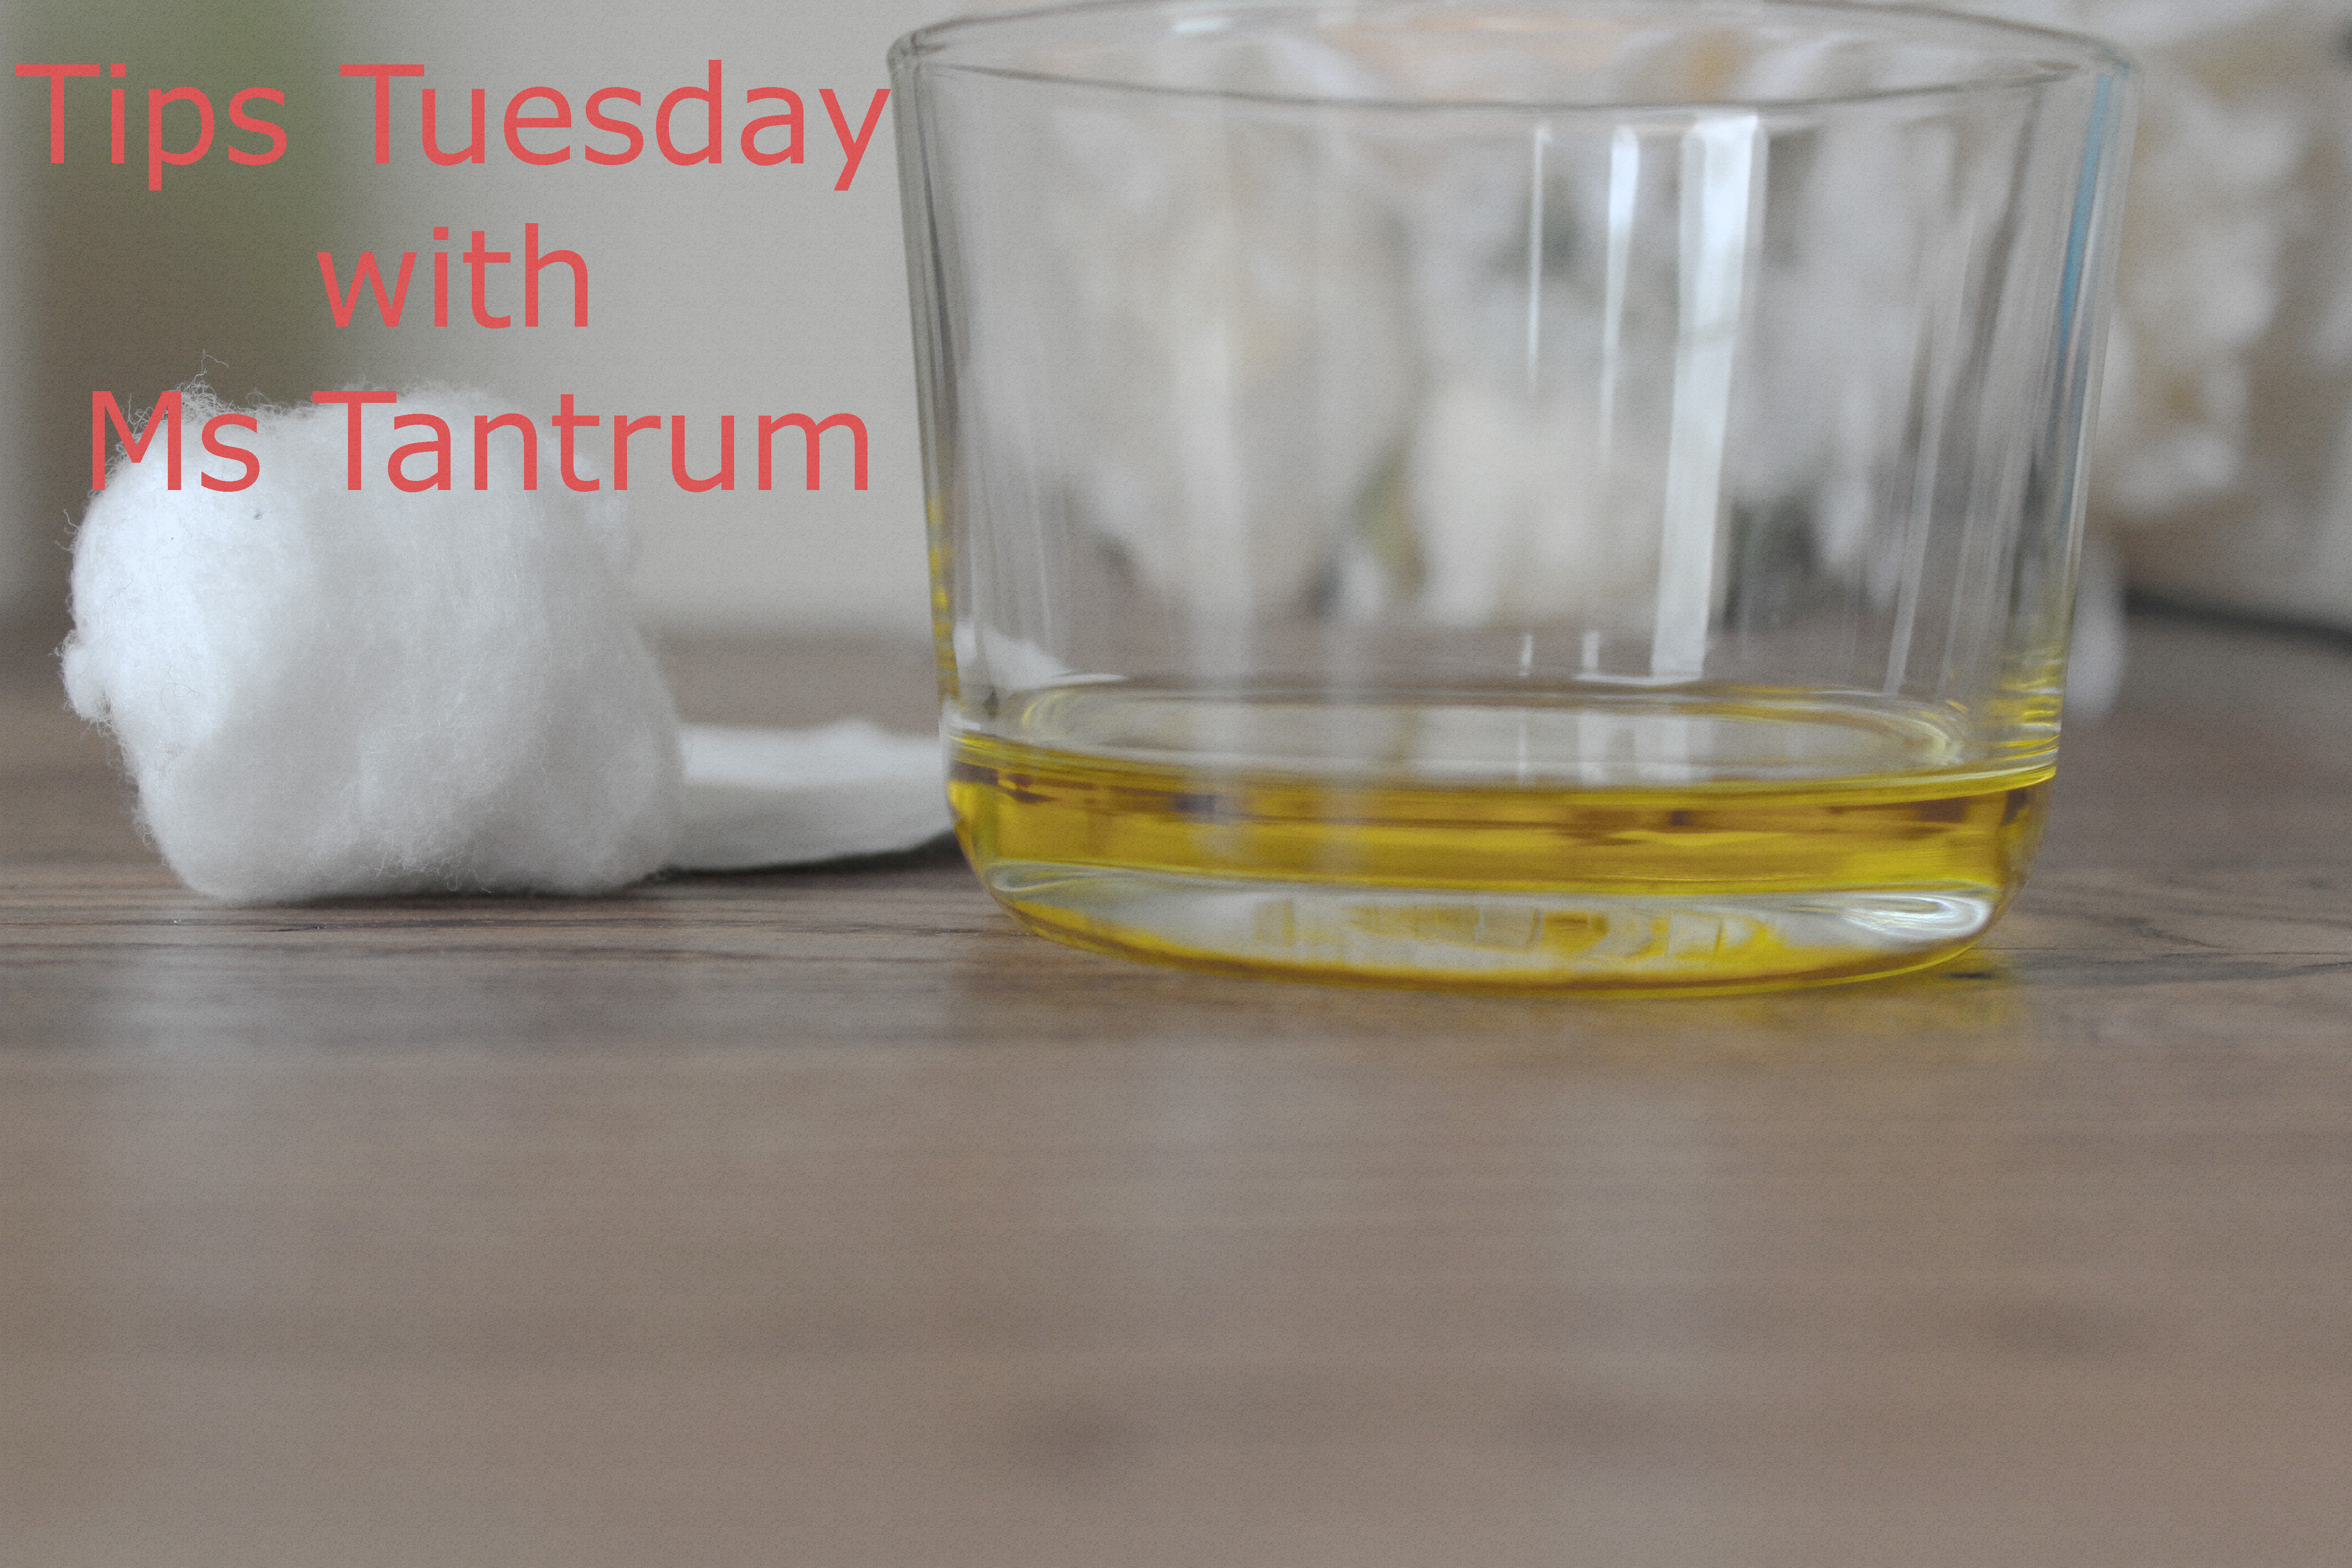 Tips Tuesday - olive oil and vaseline tip